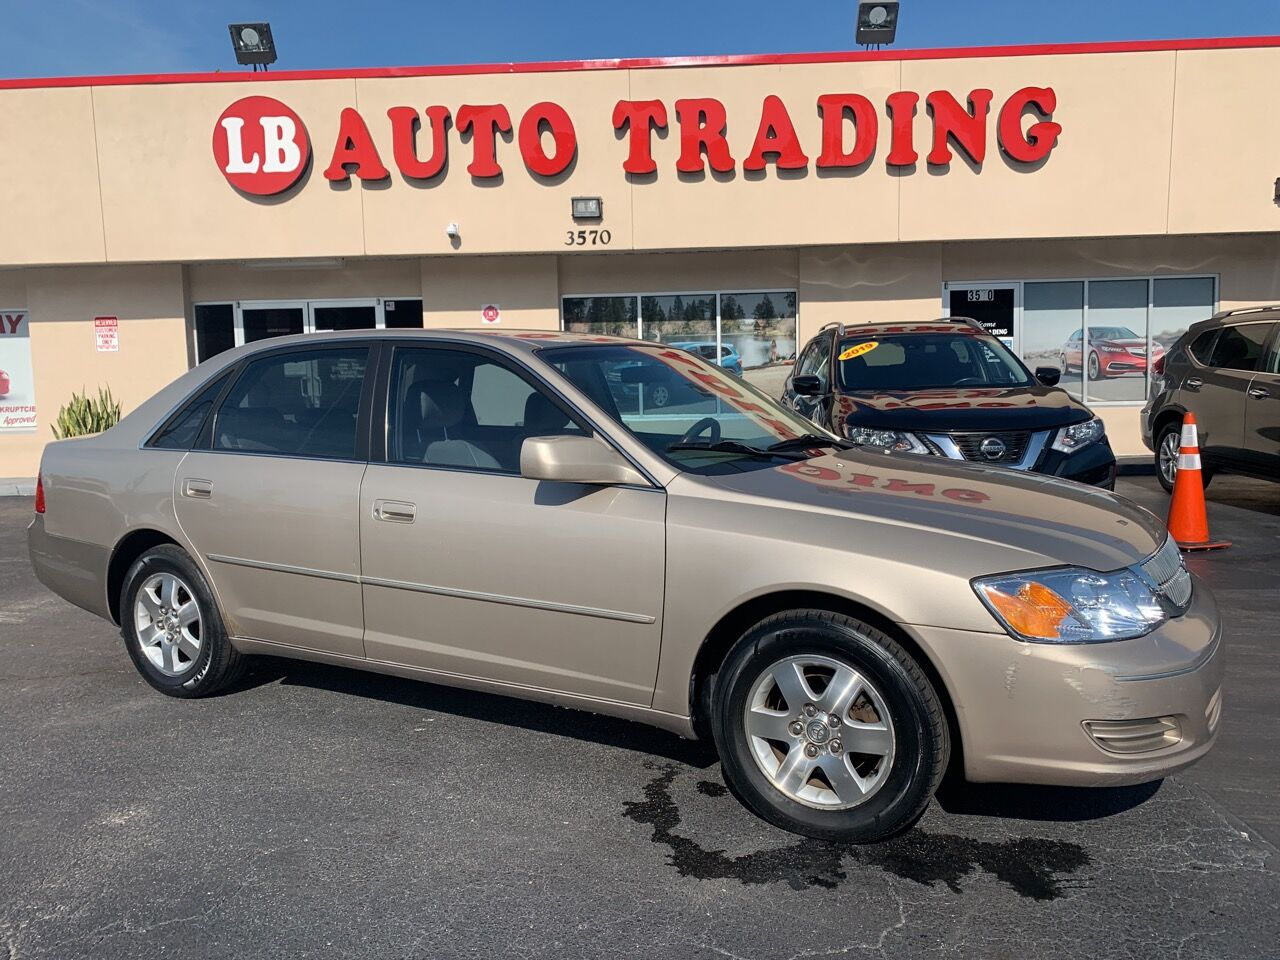 used 2000 toyota avalon for sale carsforsale com used 2000 toyota avalon for sale